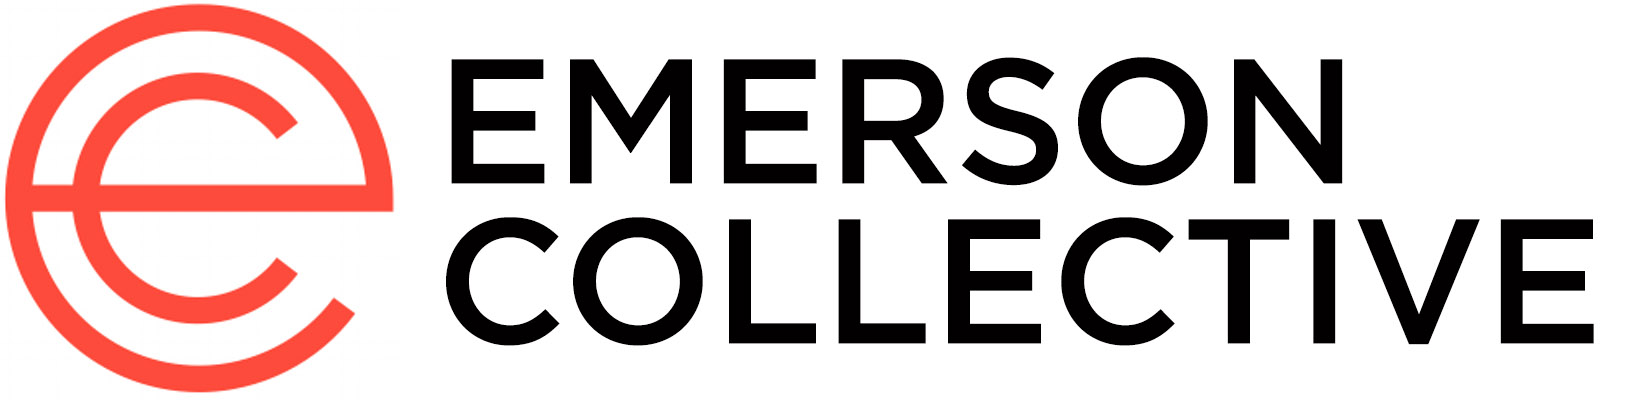 Emerson_logo-plus-text.jpg